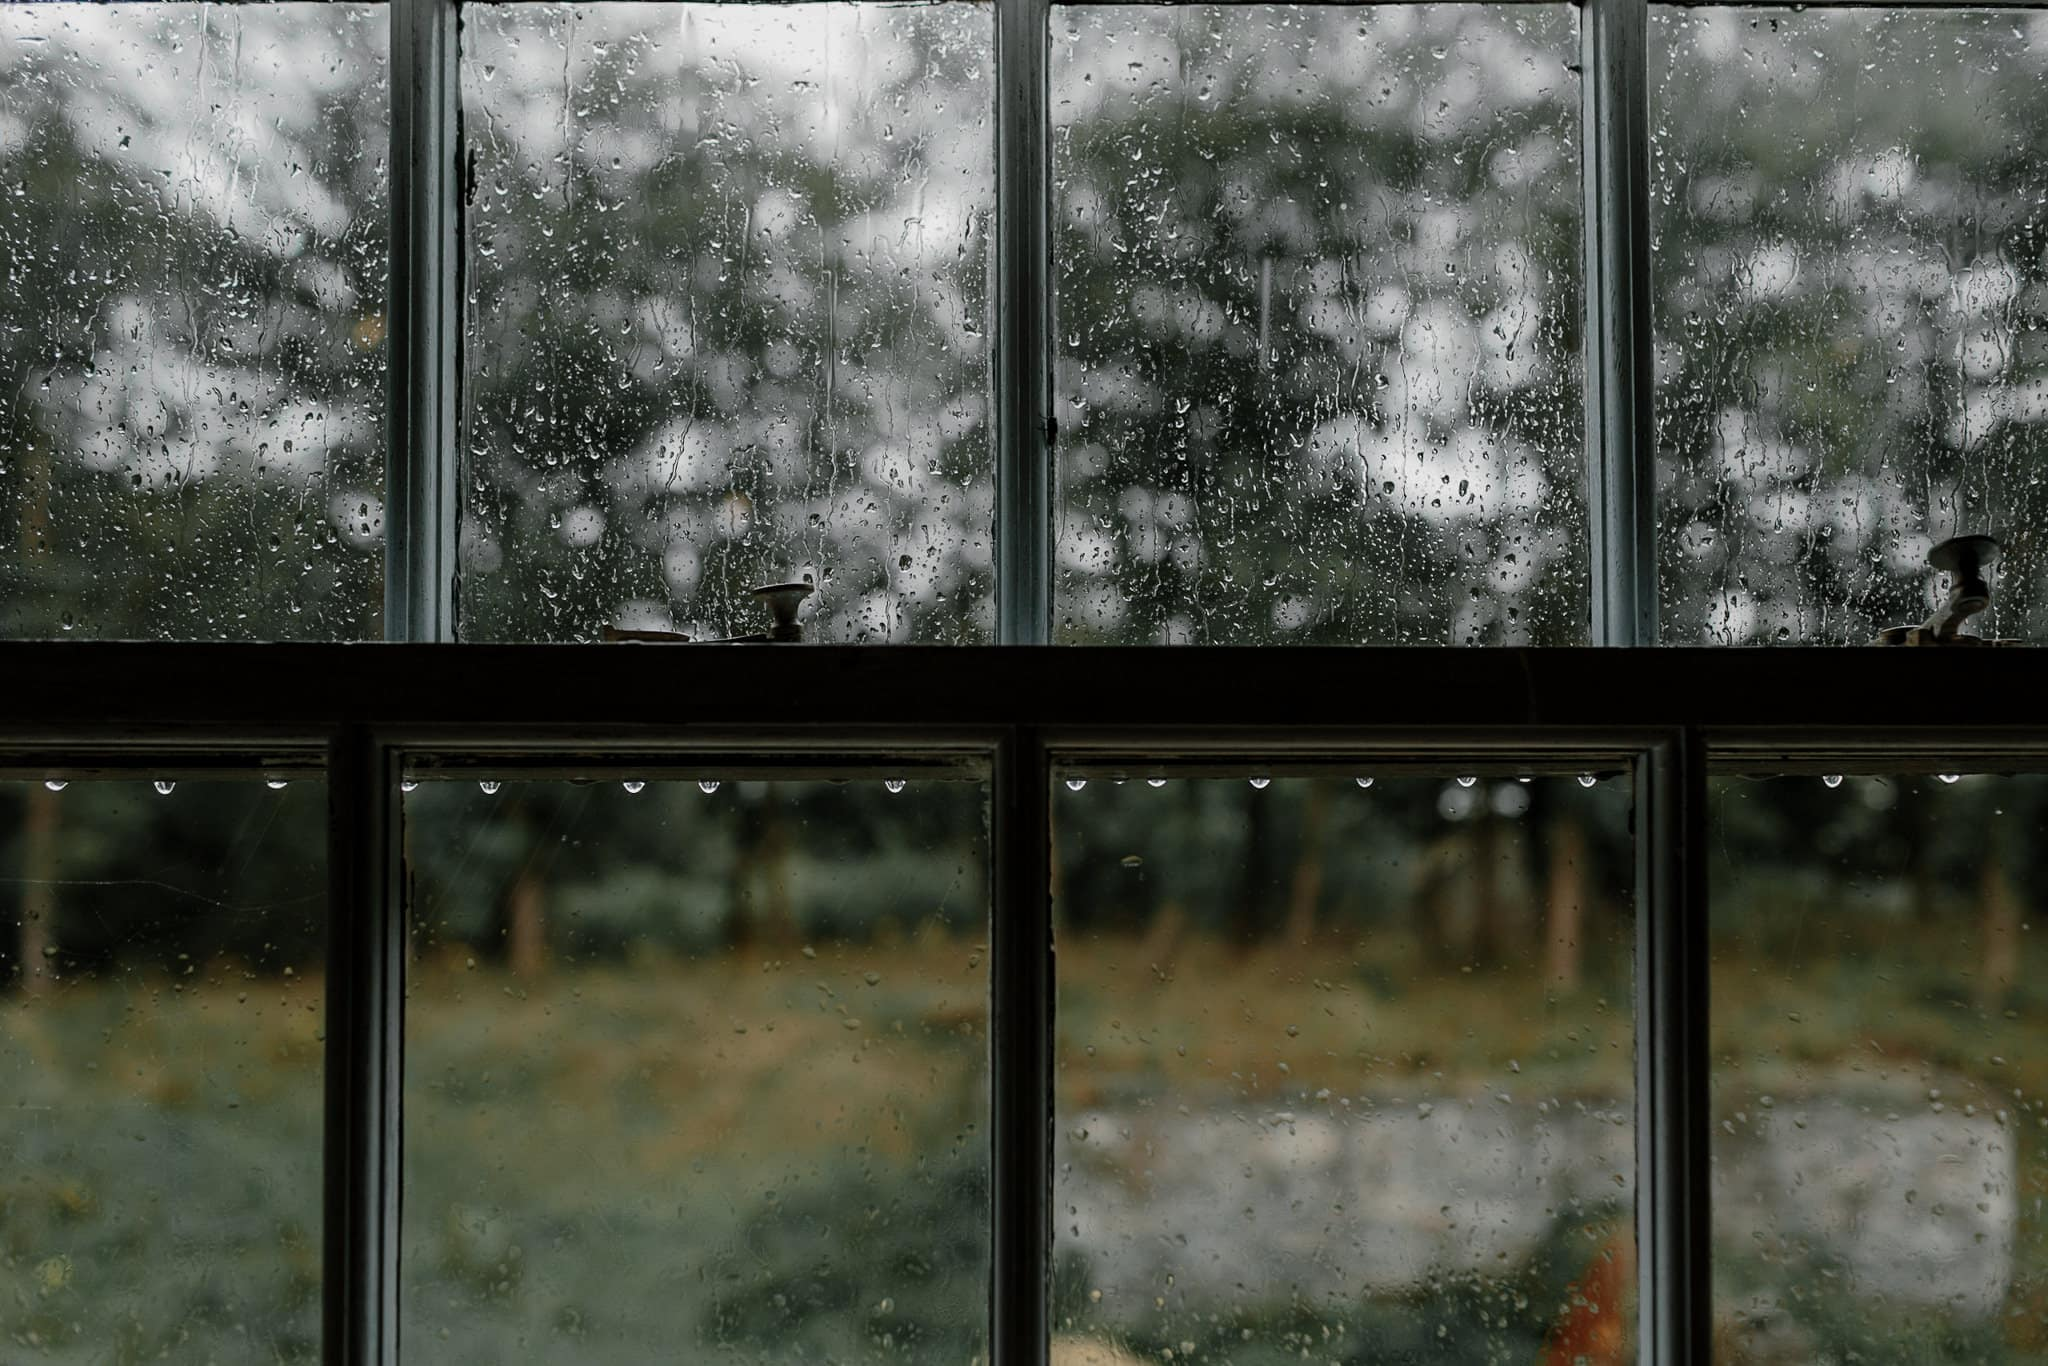 A close-up of a windo pane showing rain drops at Carreglwyd Estate